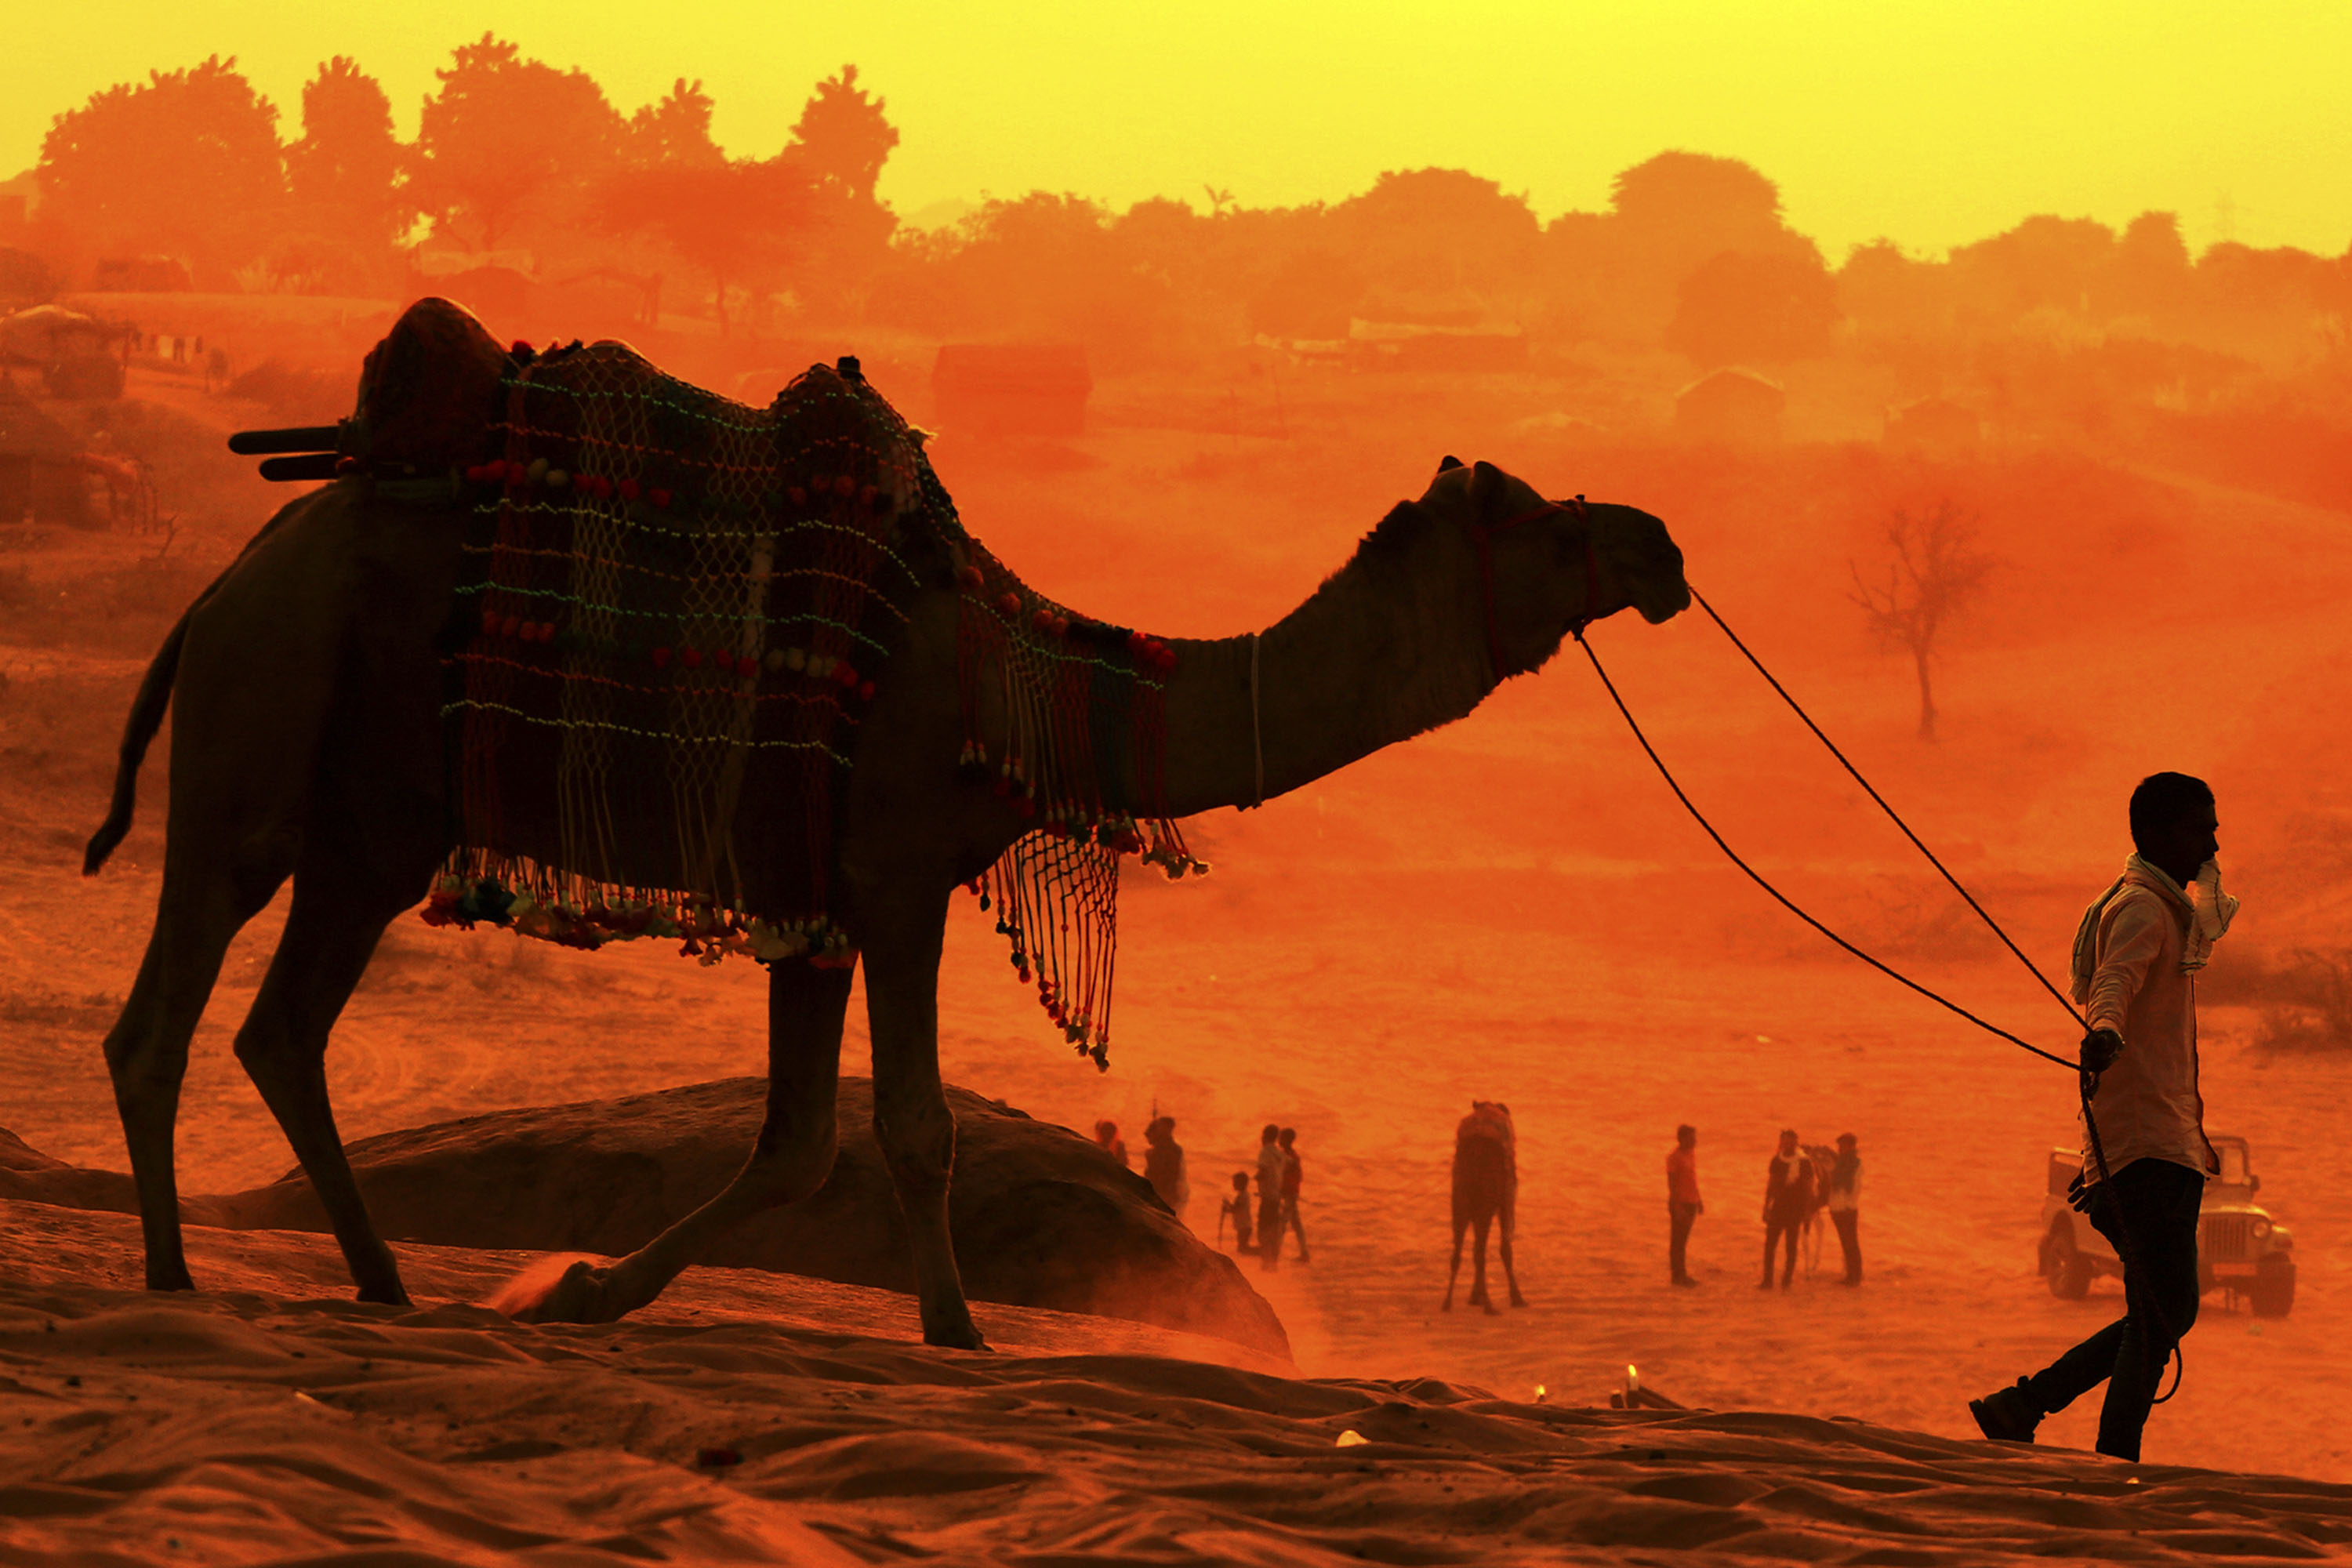 A man walks with his camel at the desert of Pushkar, in the Indian state of Rajasthan on 29 October 2020.